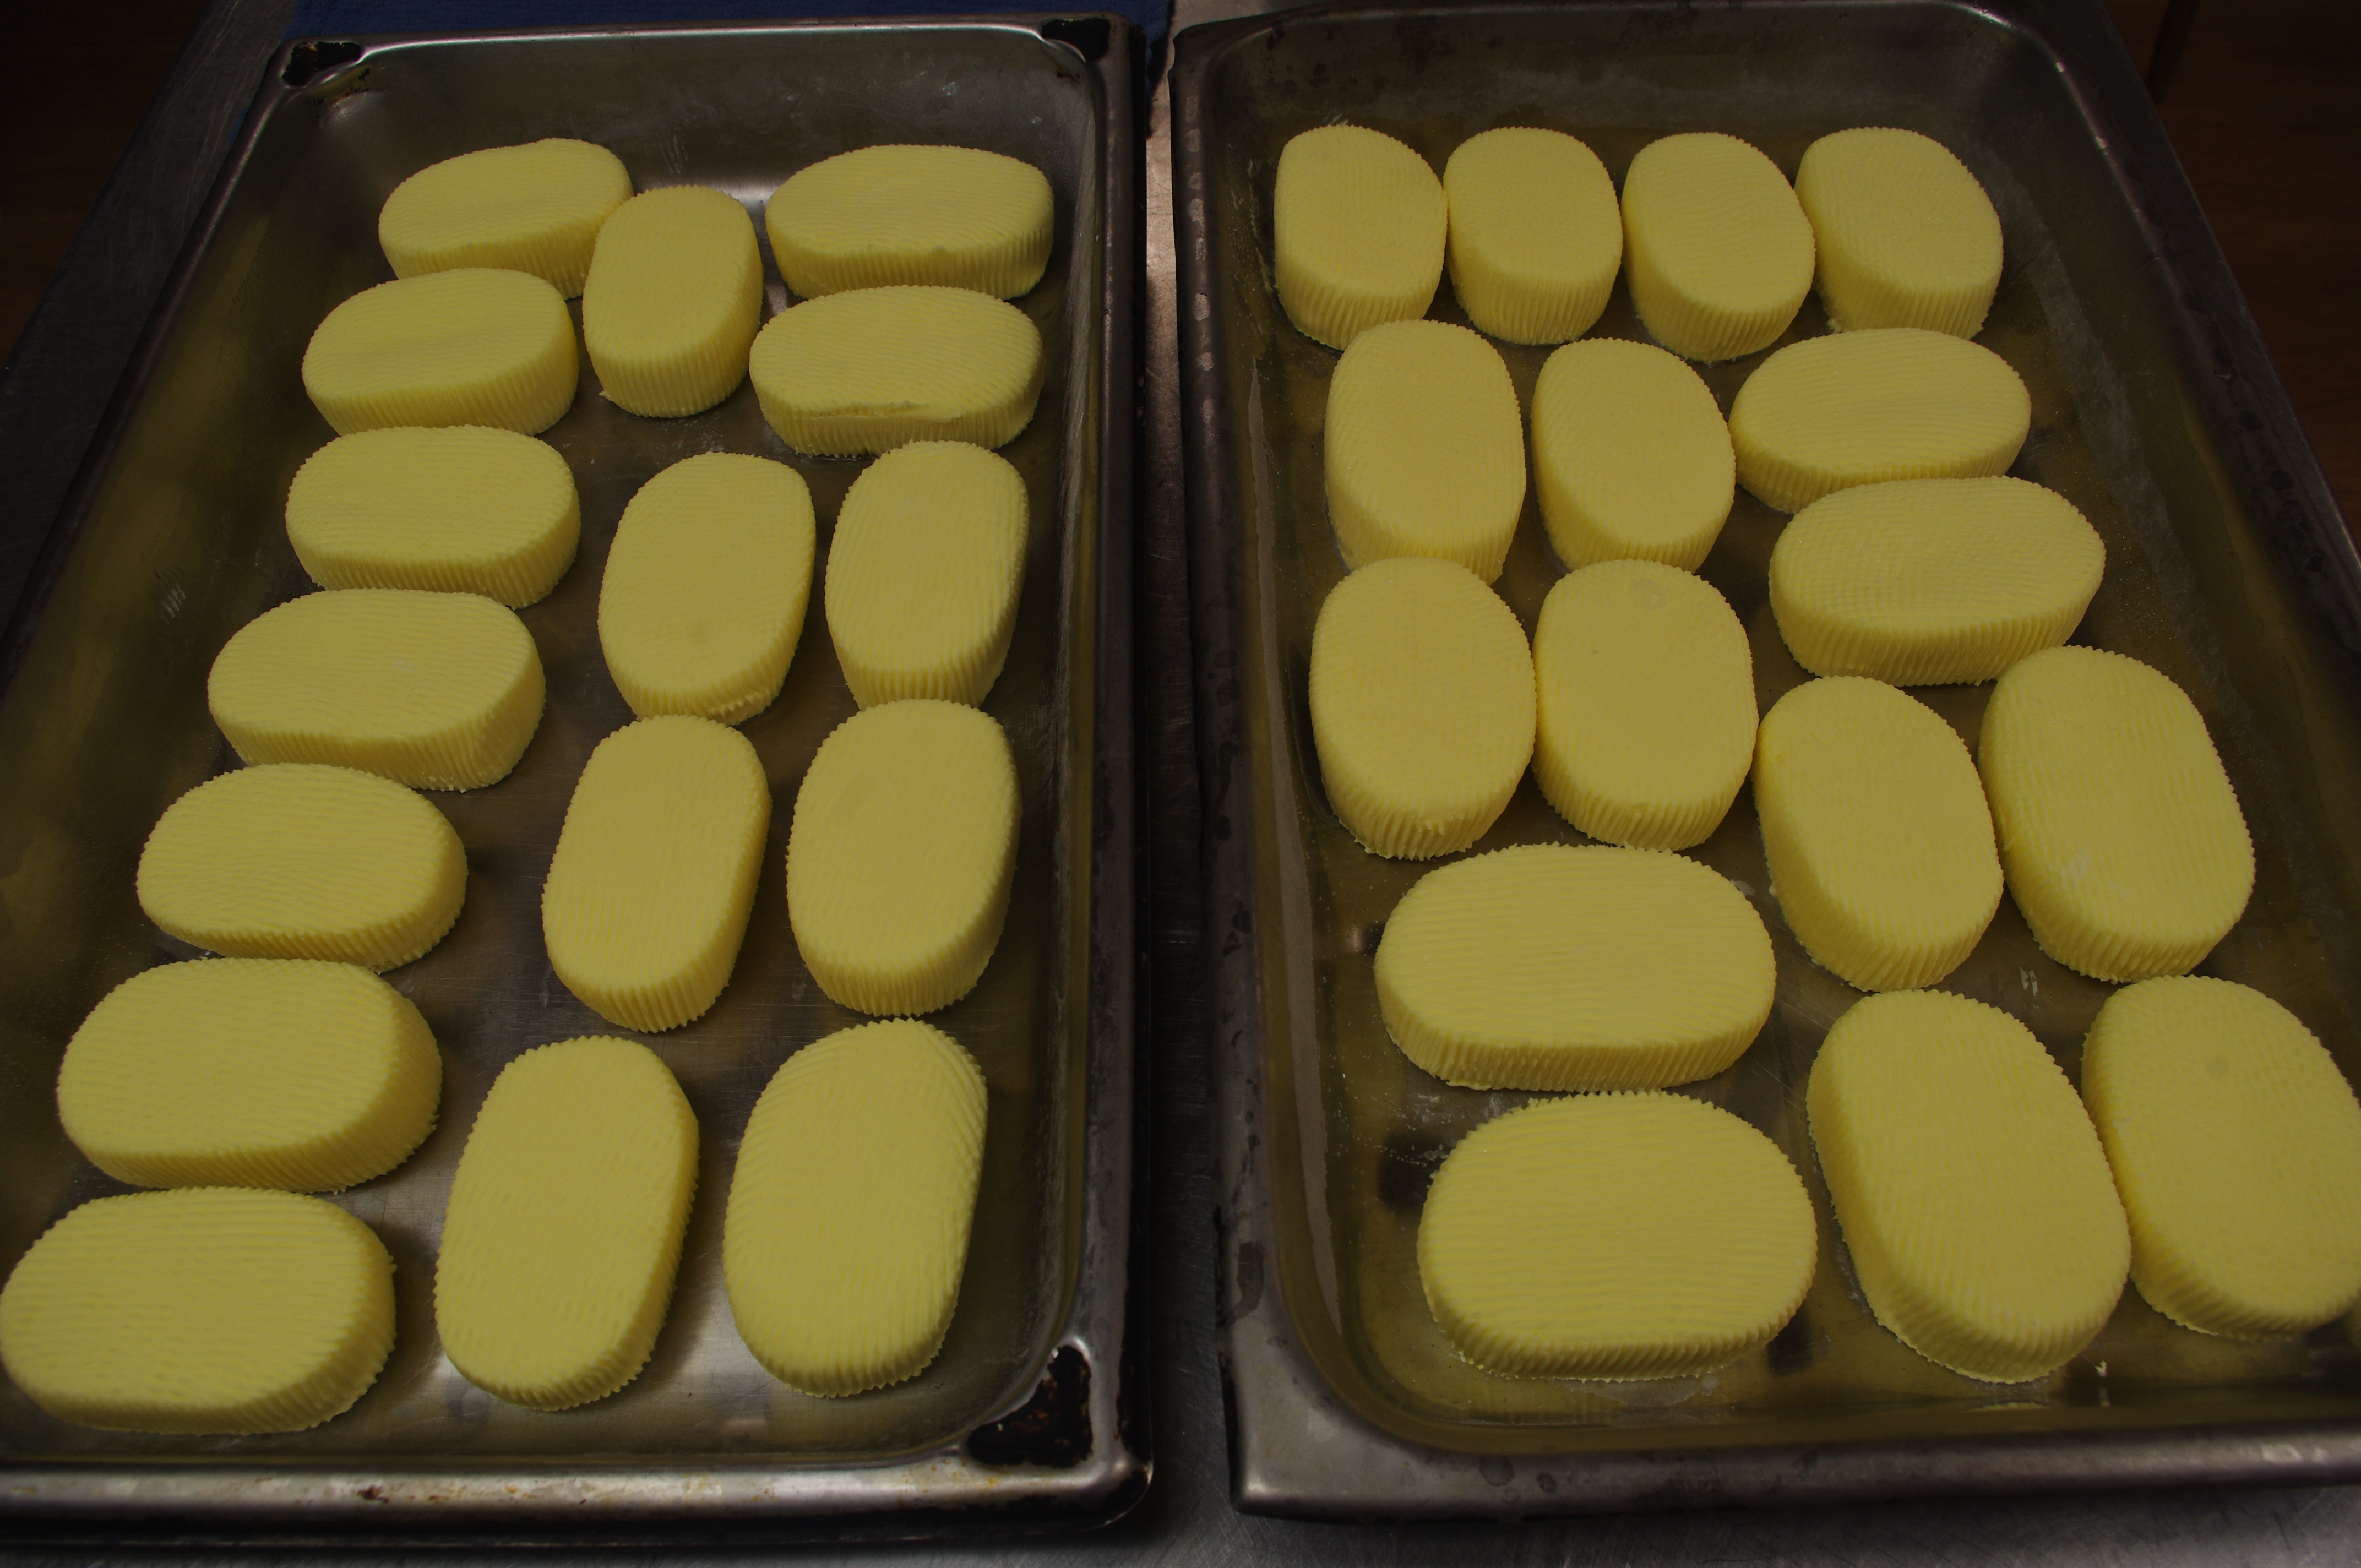 Ages made the cakes of butter above using cream from the Community's cows